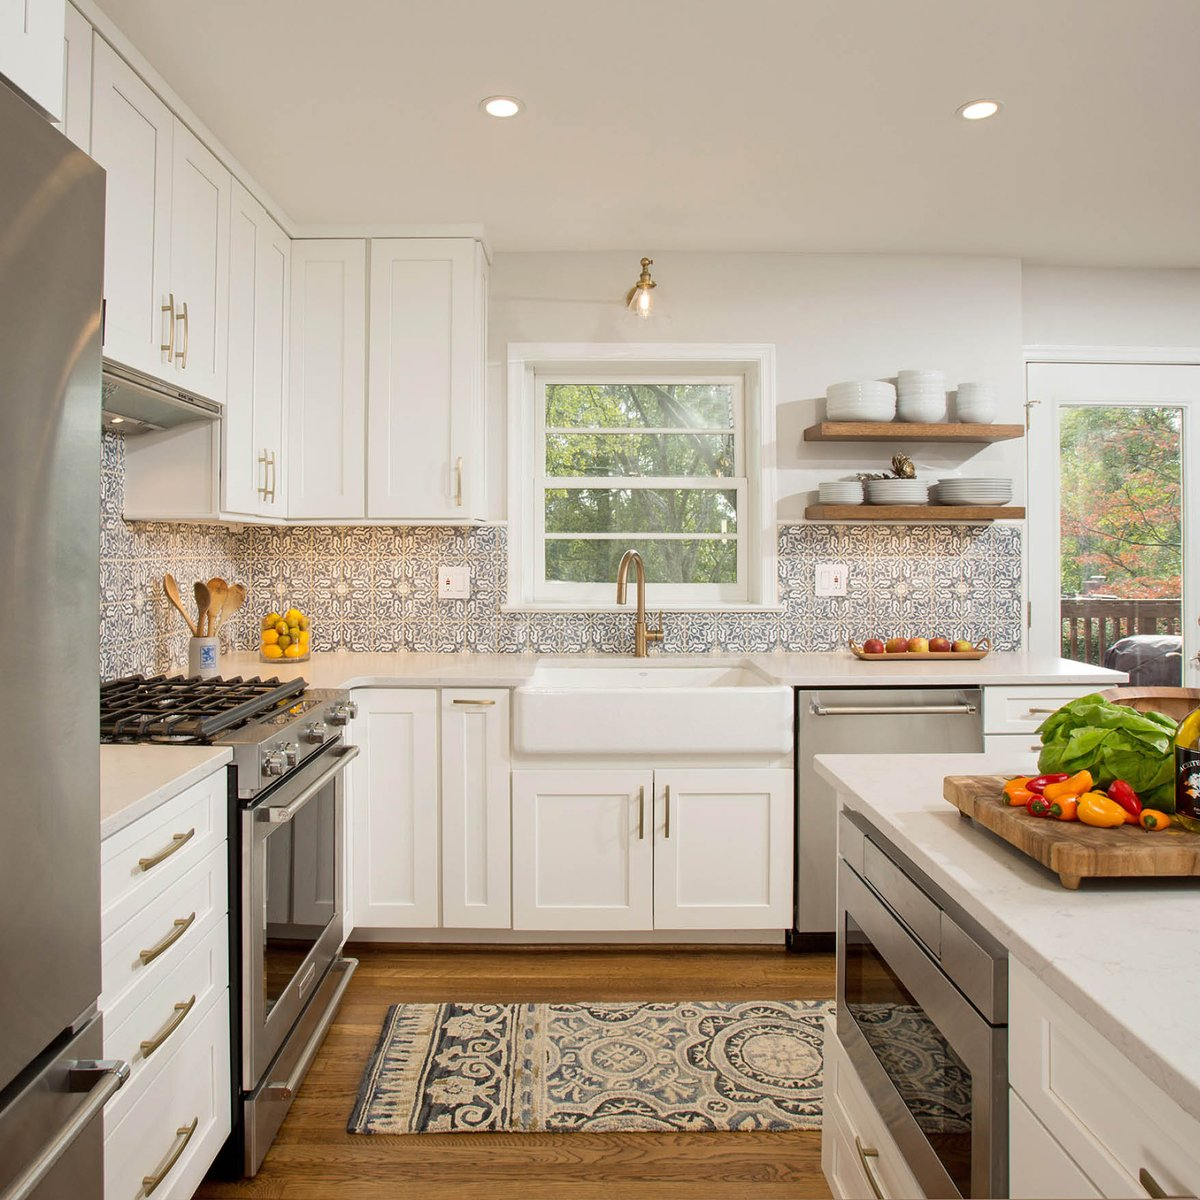 Waypointlivingspaces On Twitter Statement Tile And 650 Painted Linen Spice Up This One Of A Kind Space Anna Gibson Of Virginia Marble In Chantilly Va Designed This Open Concept Kitchen Https T Co 6u7122tkyb Whitekitchen Waypointlivingspaces